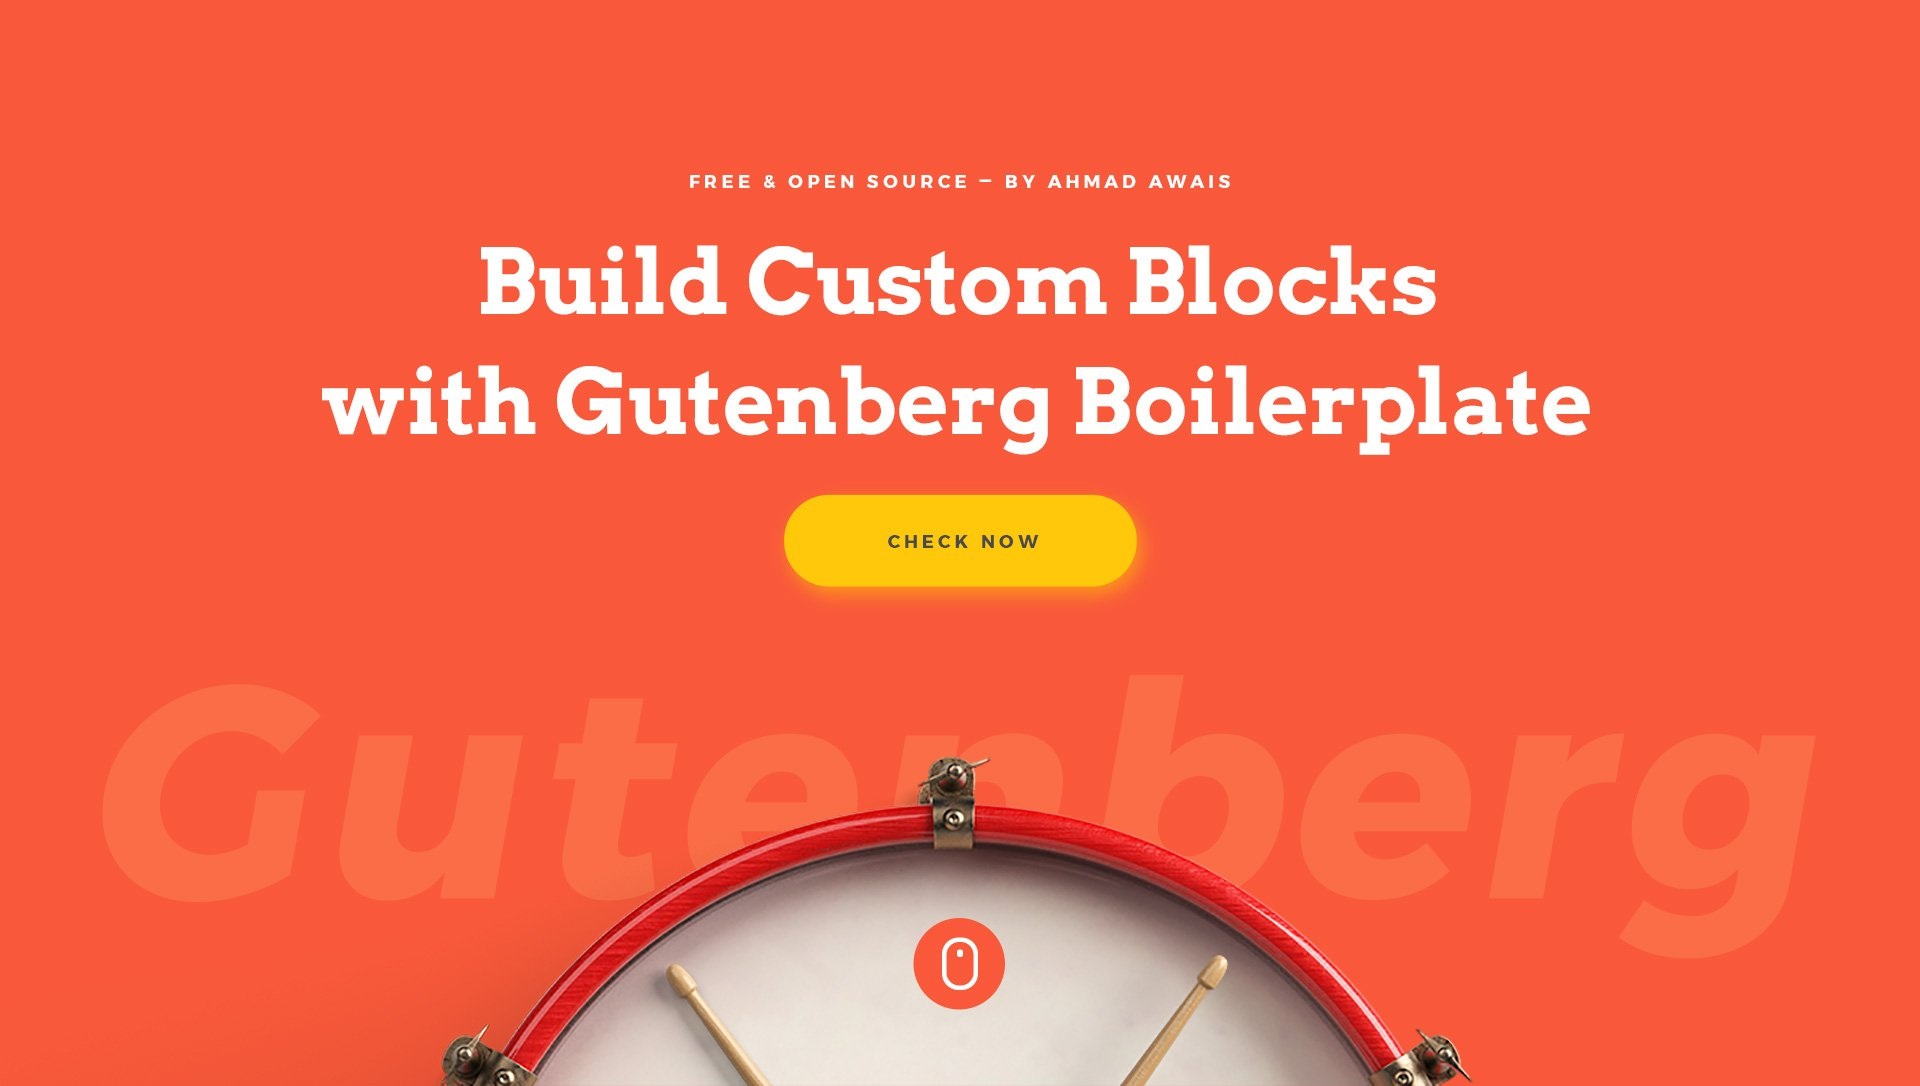 🎖Introducing Gutenberg Boilerplate! 📃 READ about #Gutenberg Editor, the dependency hell, license paradox, & stuff.  https://t.co/N4K7nIBnw7 https://t.co/8uqIJP7IZY